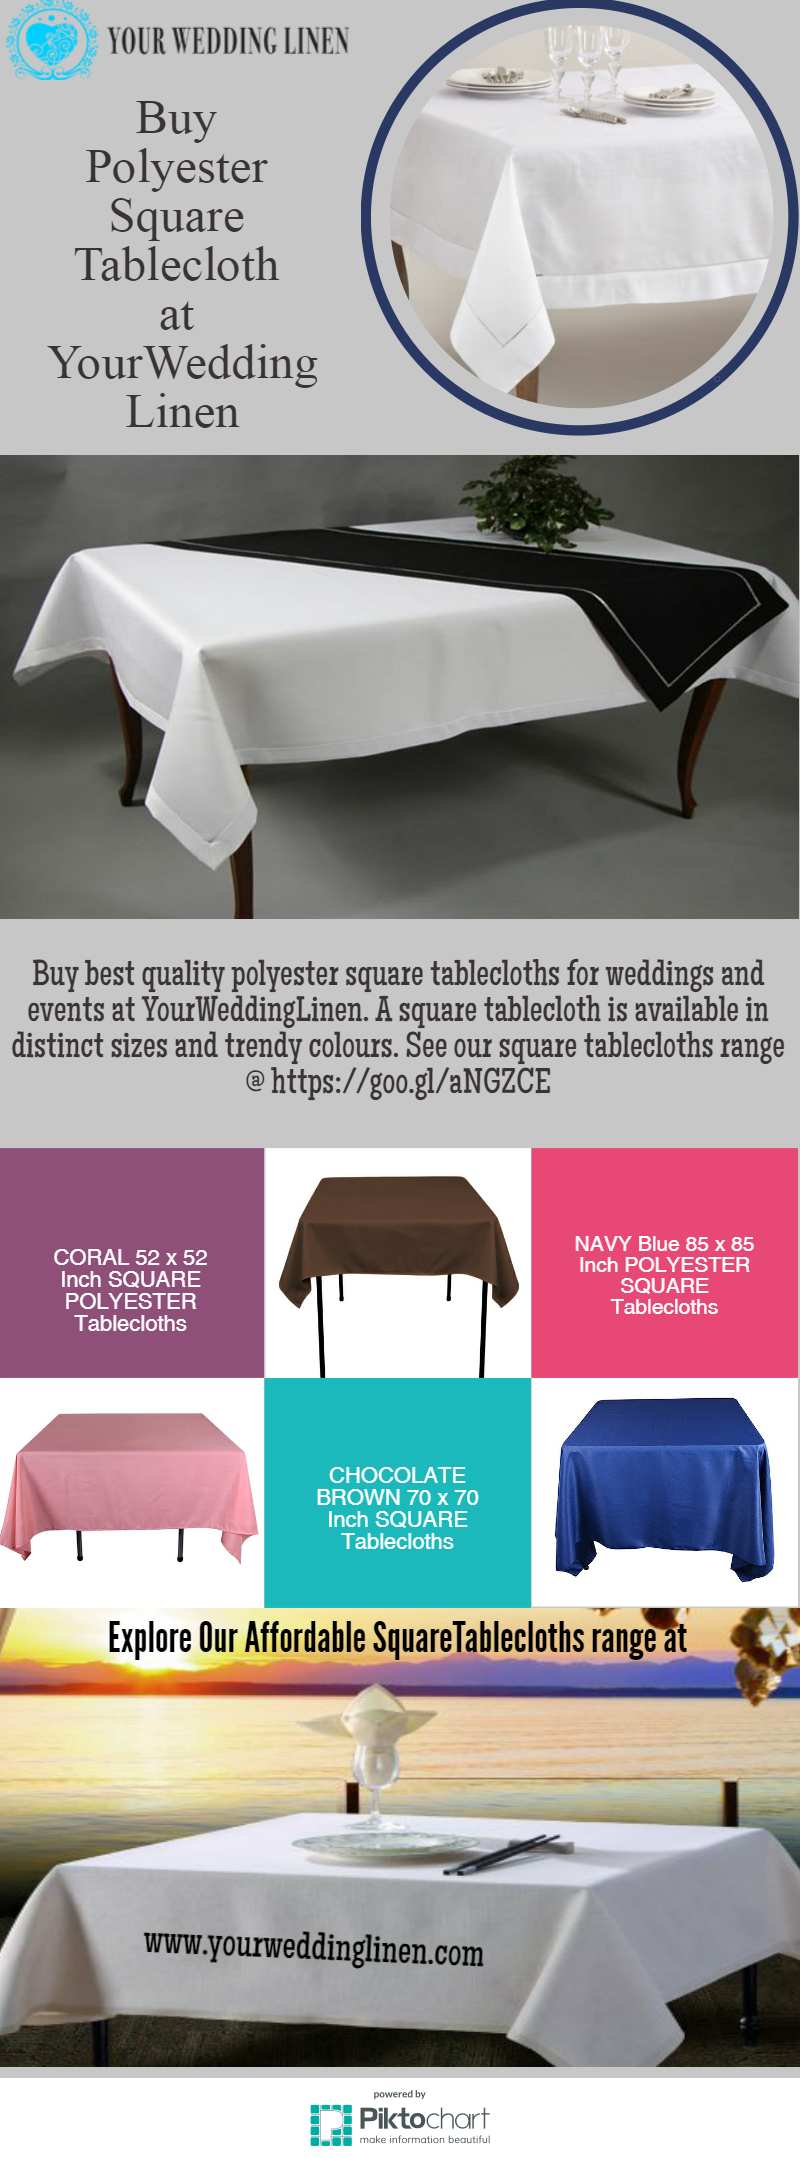 Buy Best Quality Polyester Square Tablecloths For Weddings And Events At  YourWeddingLinen. A Square Tablecloth